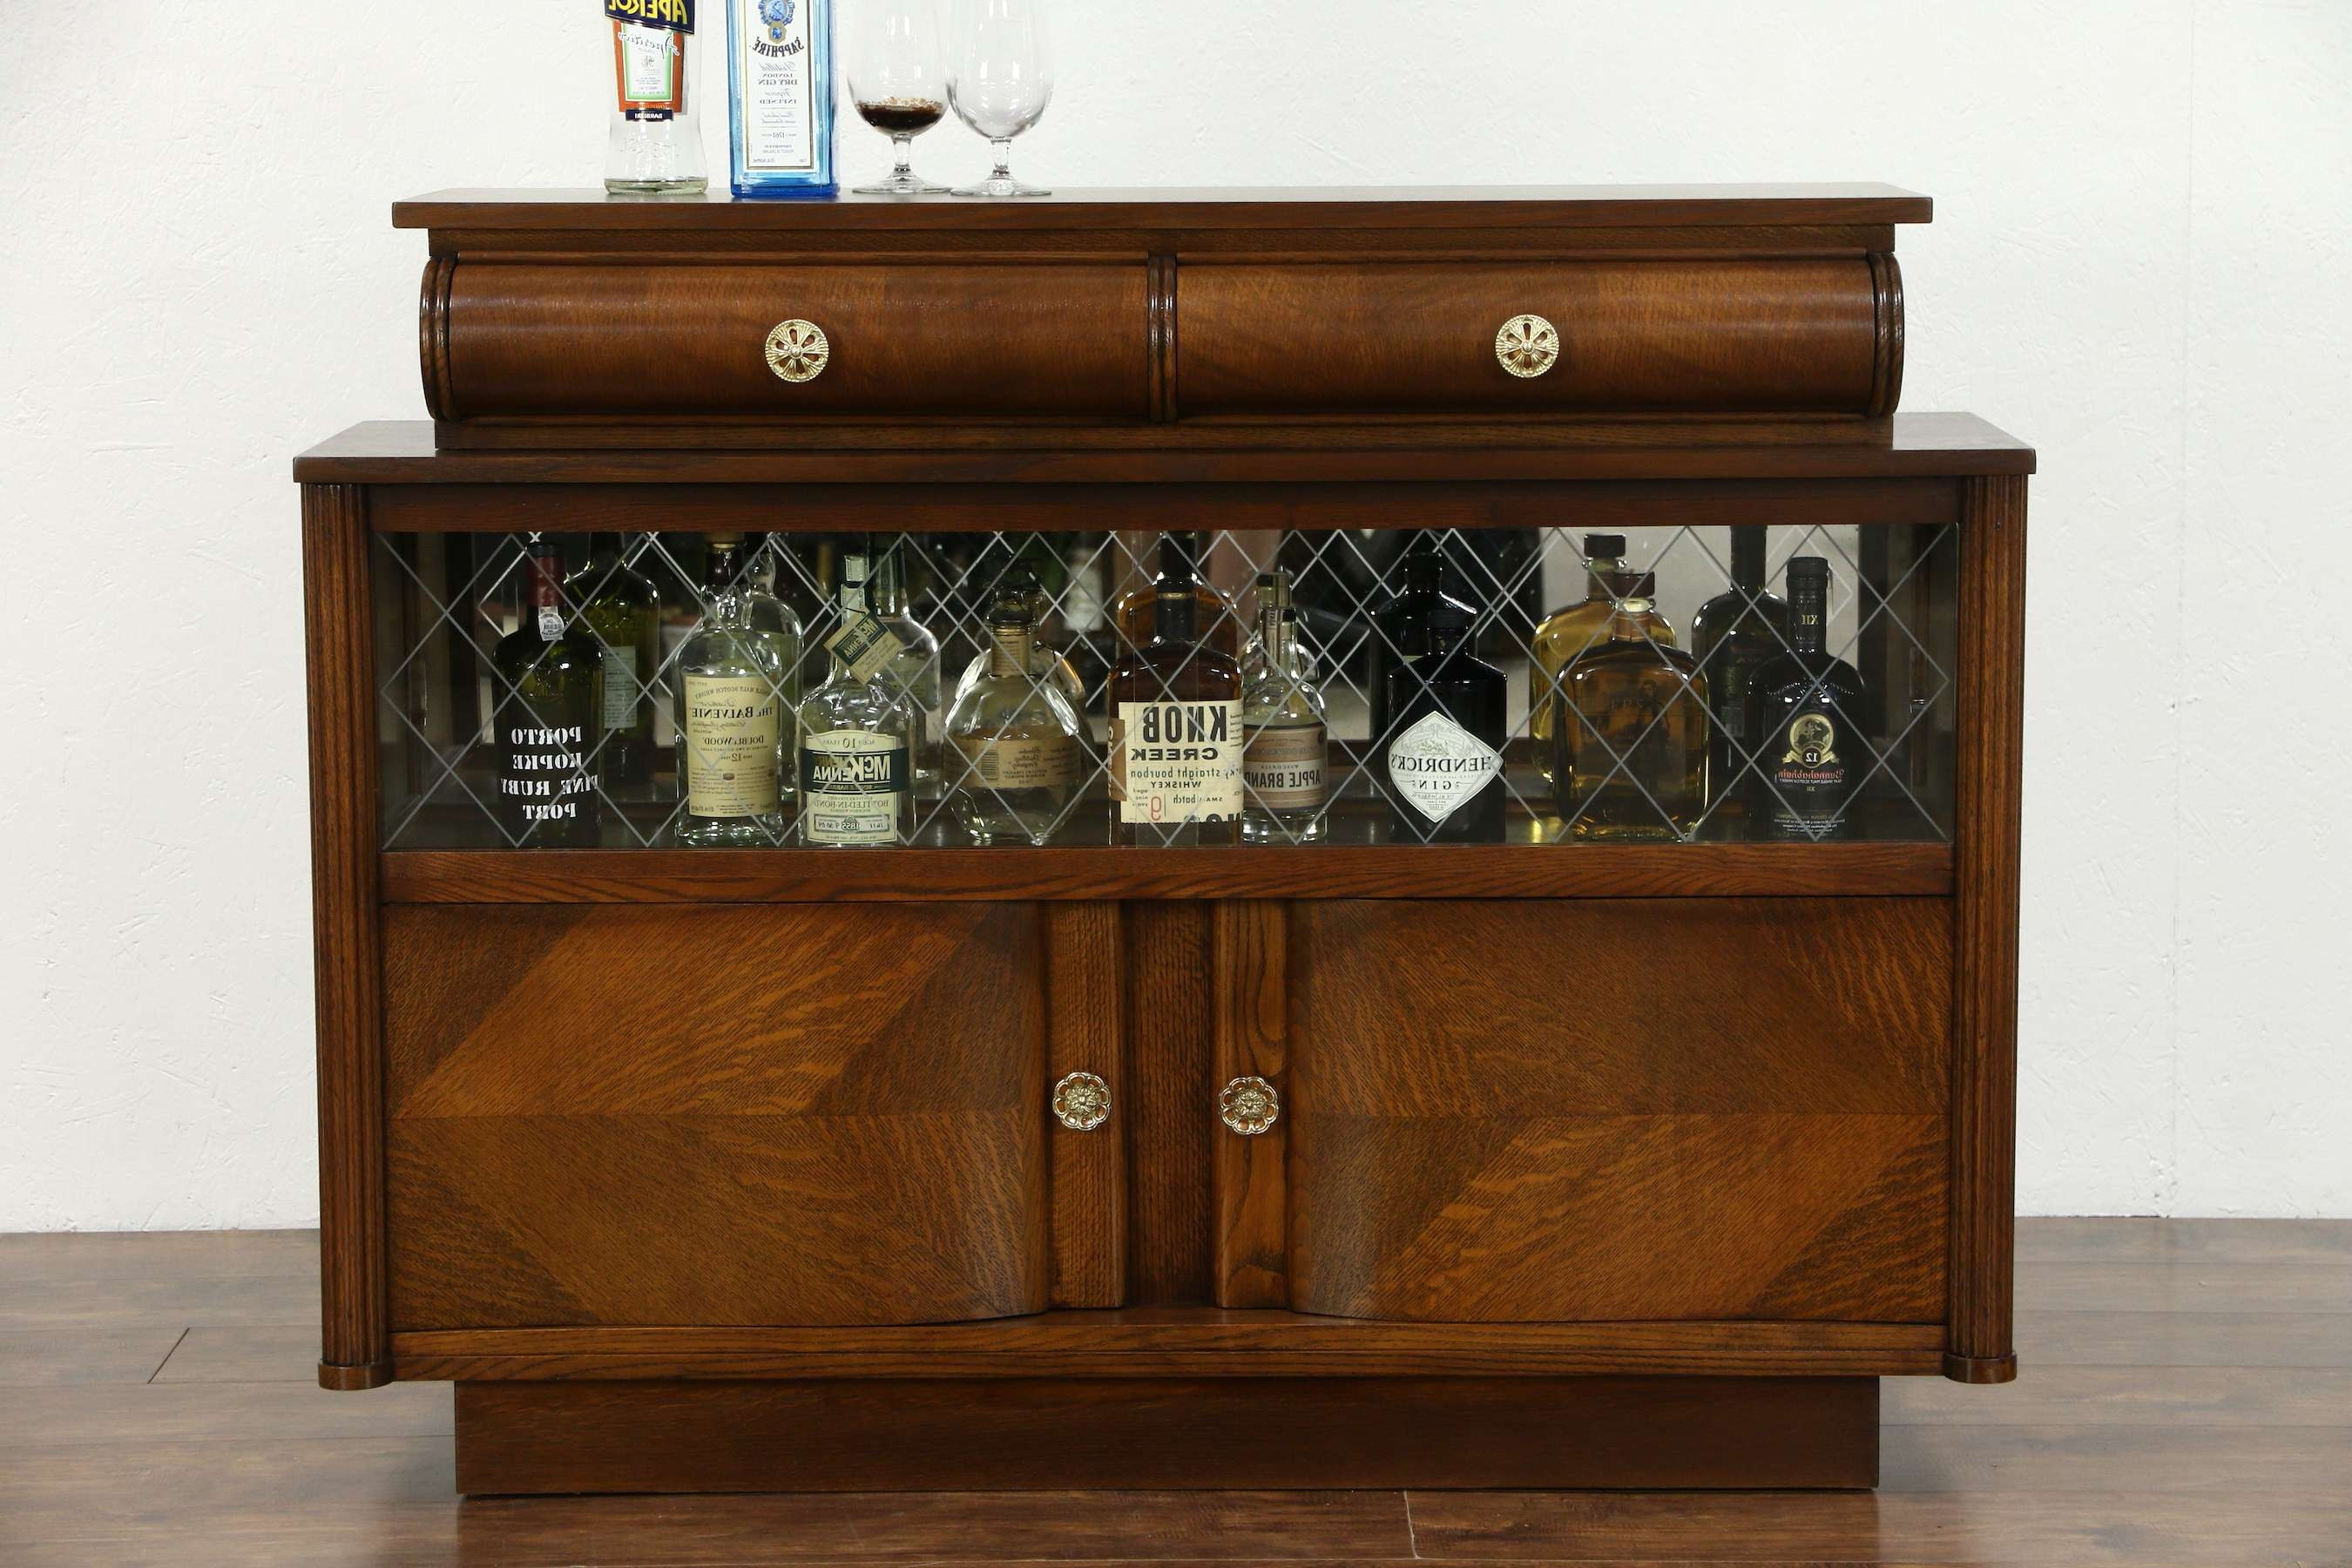 Sold – Art Deco Oak Vintage Scandinavian Sideboard, Bar Cabinet Inside Sideboards With Glass Doors (View 18 of 20)